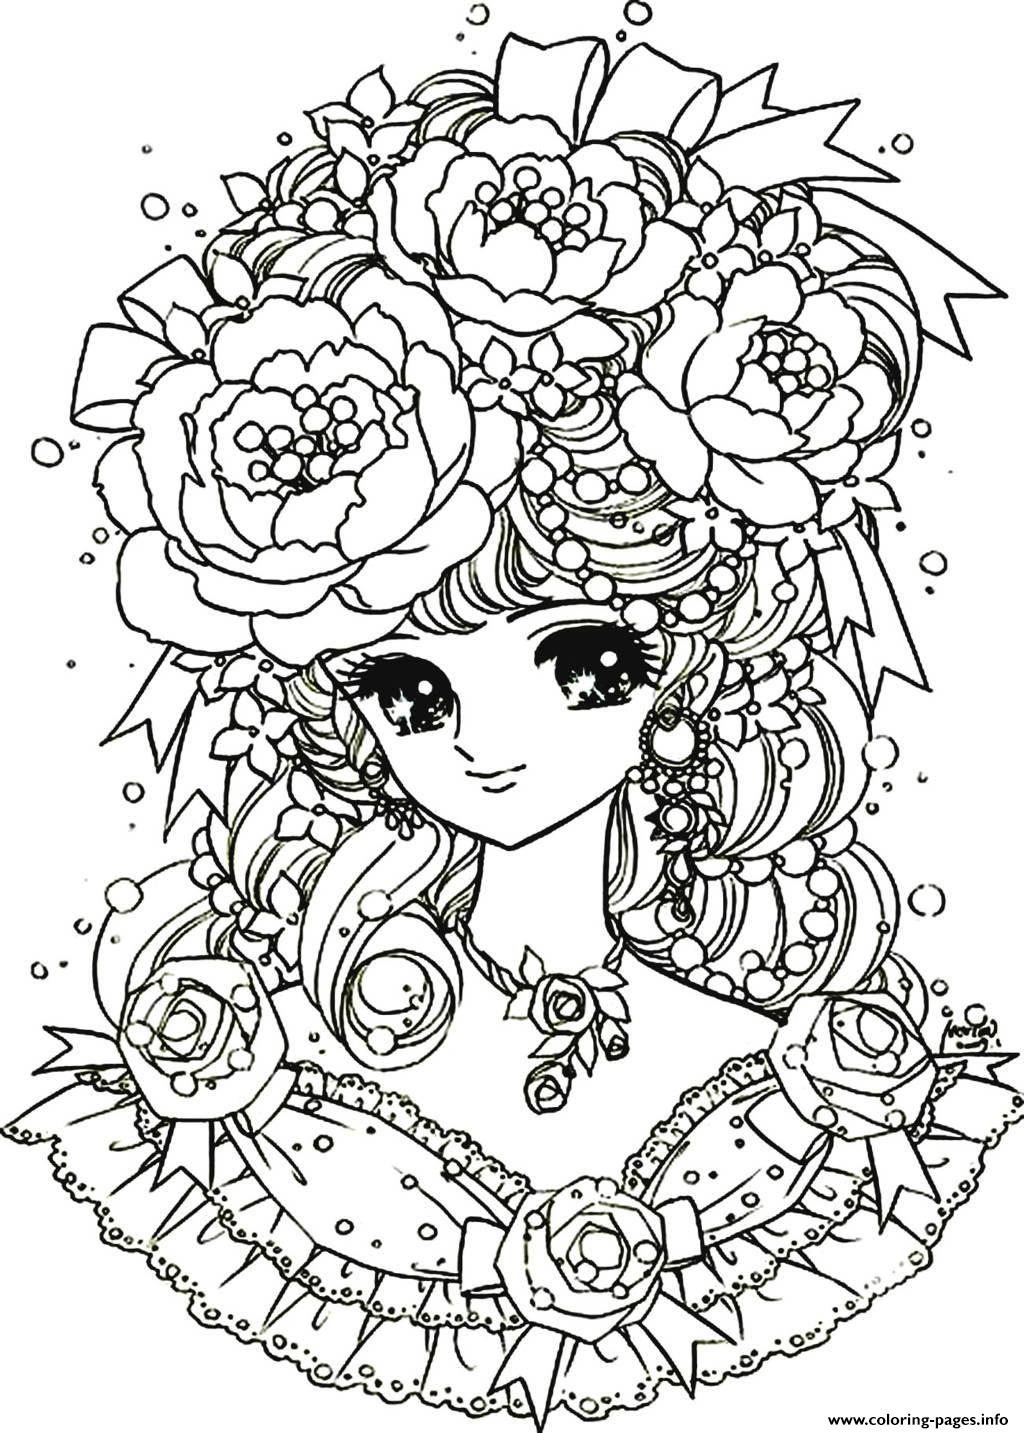 Printable coloring pages for adults flowers - Printable Coloring Pages For Adults Flowers 23